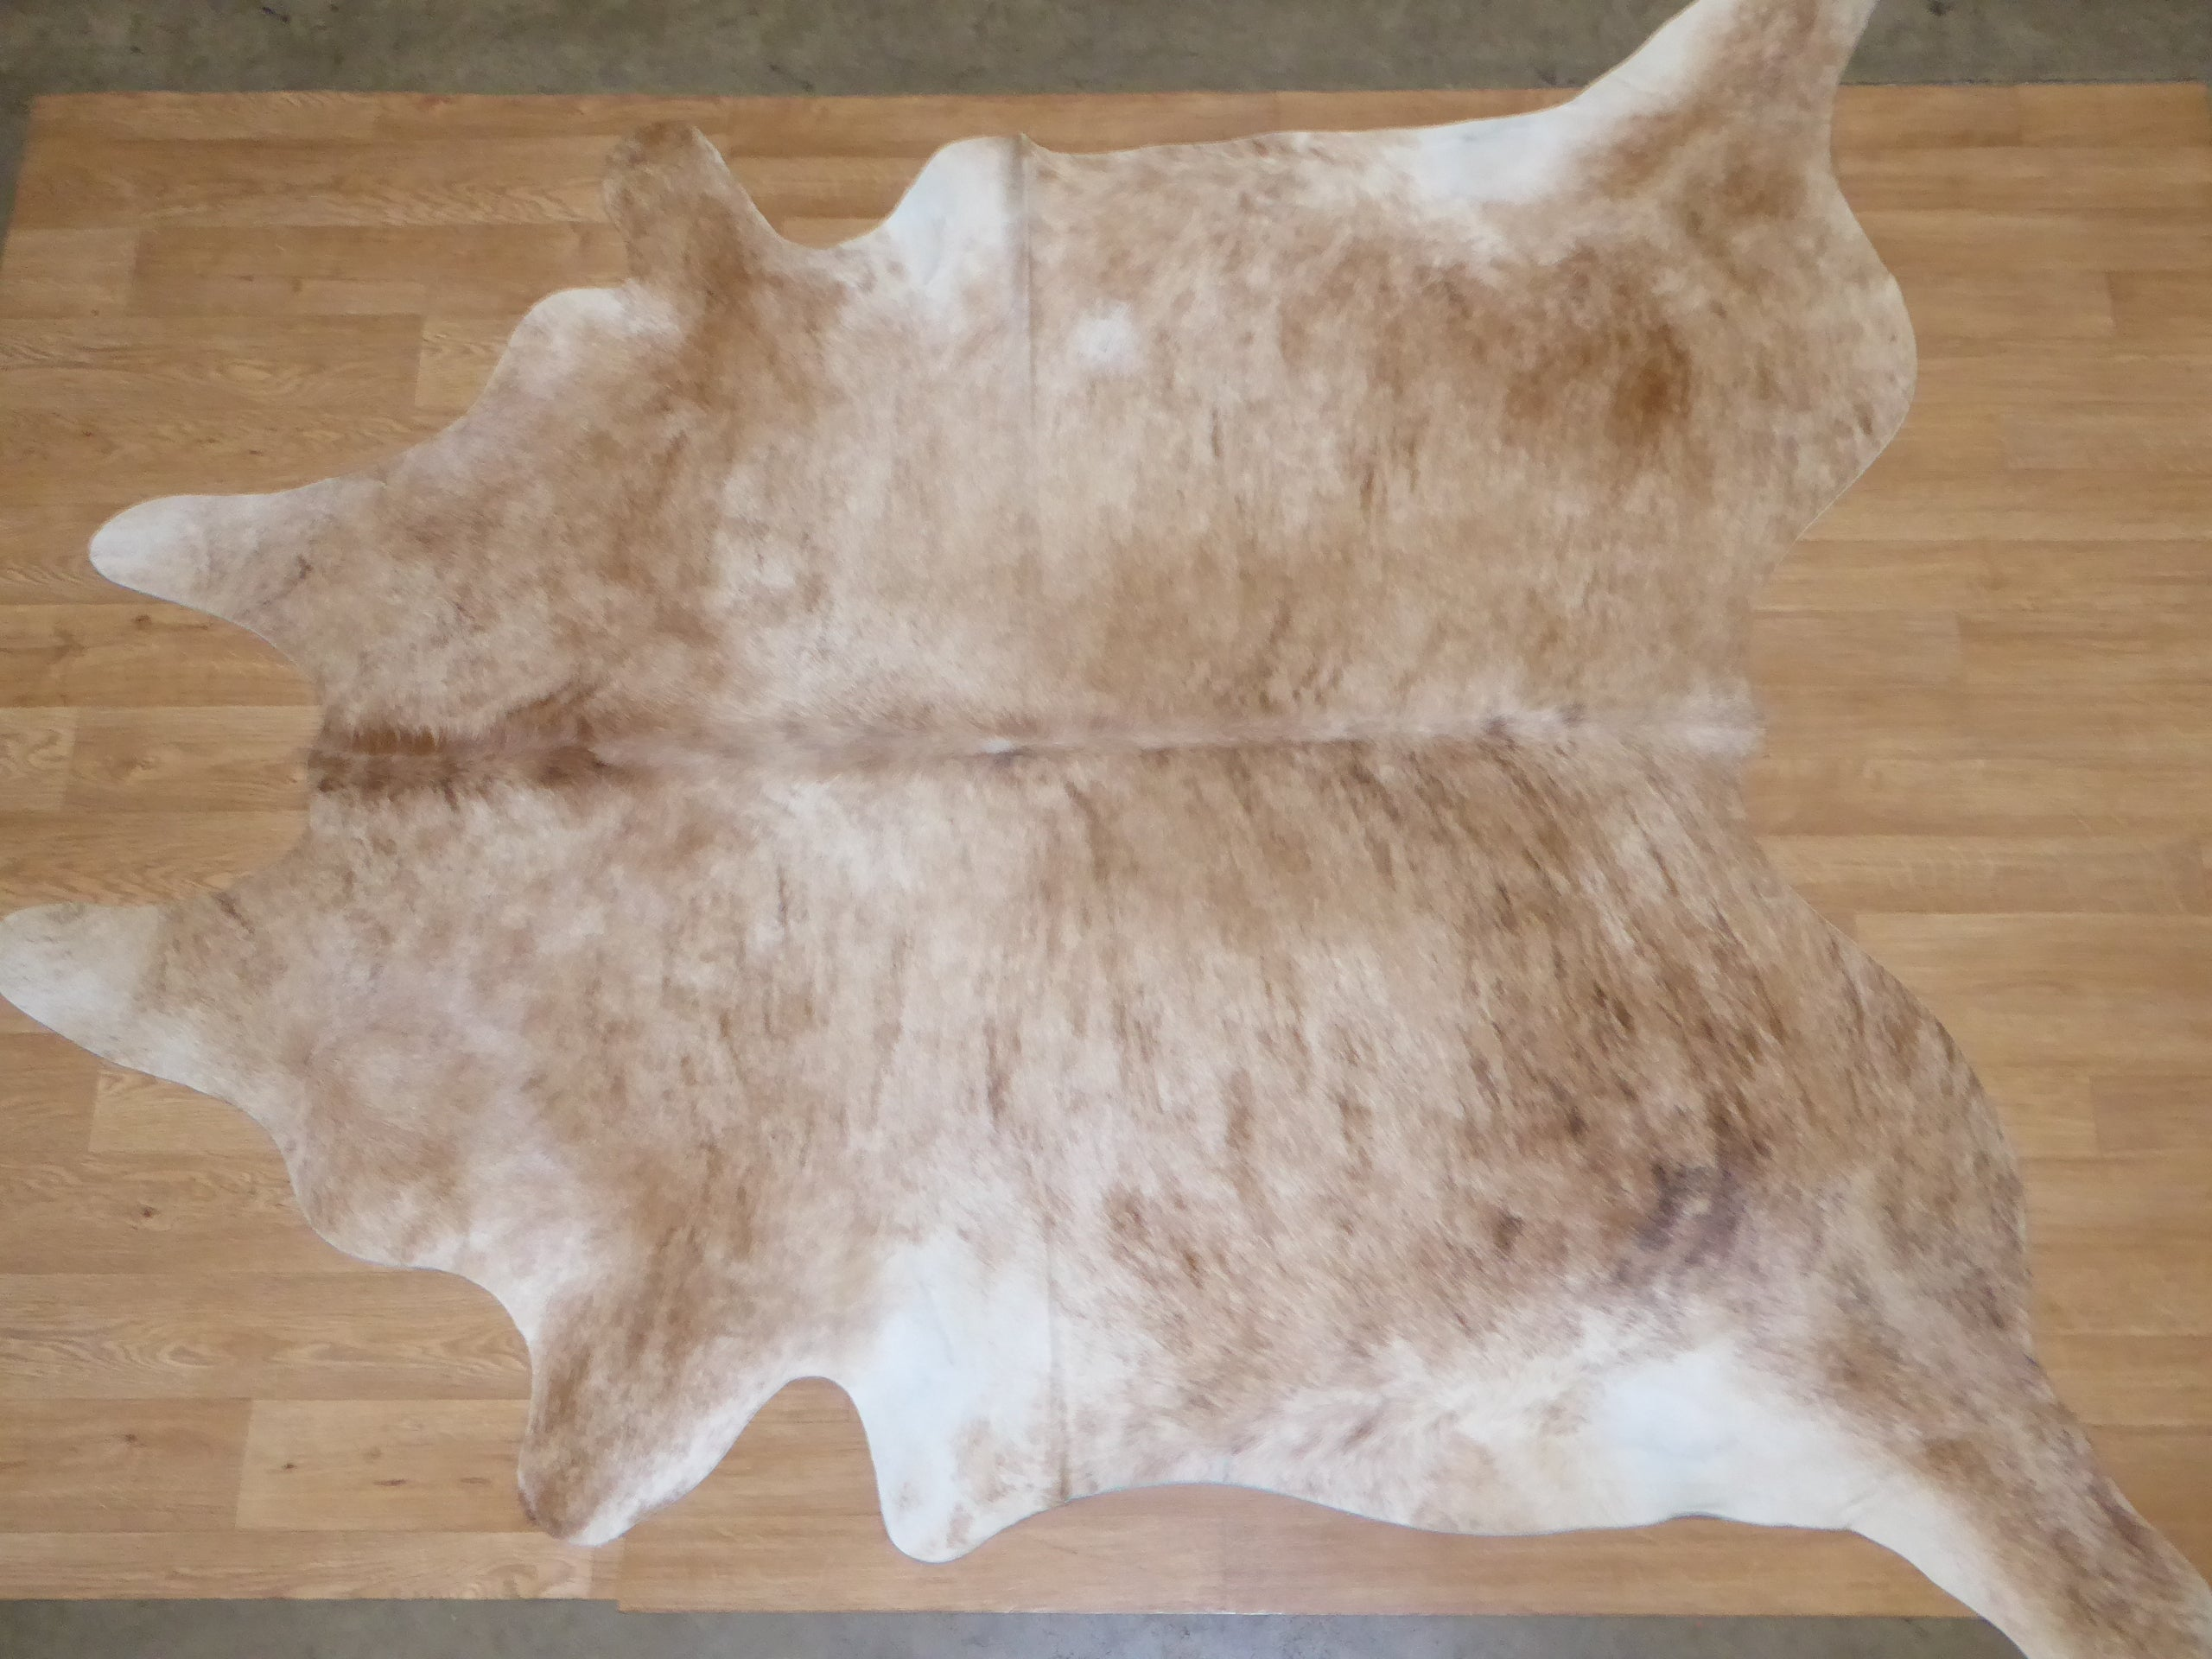 Natural Hair On Cow Hide : This Hide Is Perfect For Wall Hanging, Leather Rugs, Leather Bags & Leather Accessories (pic code 1020033)